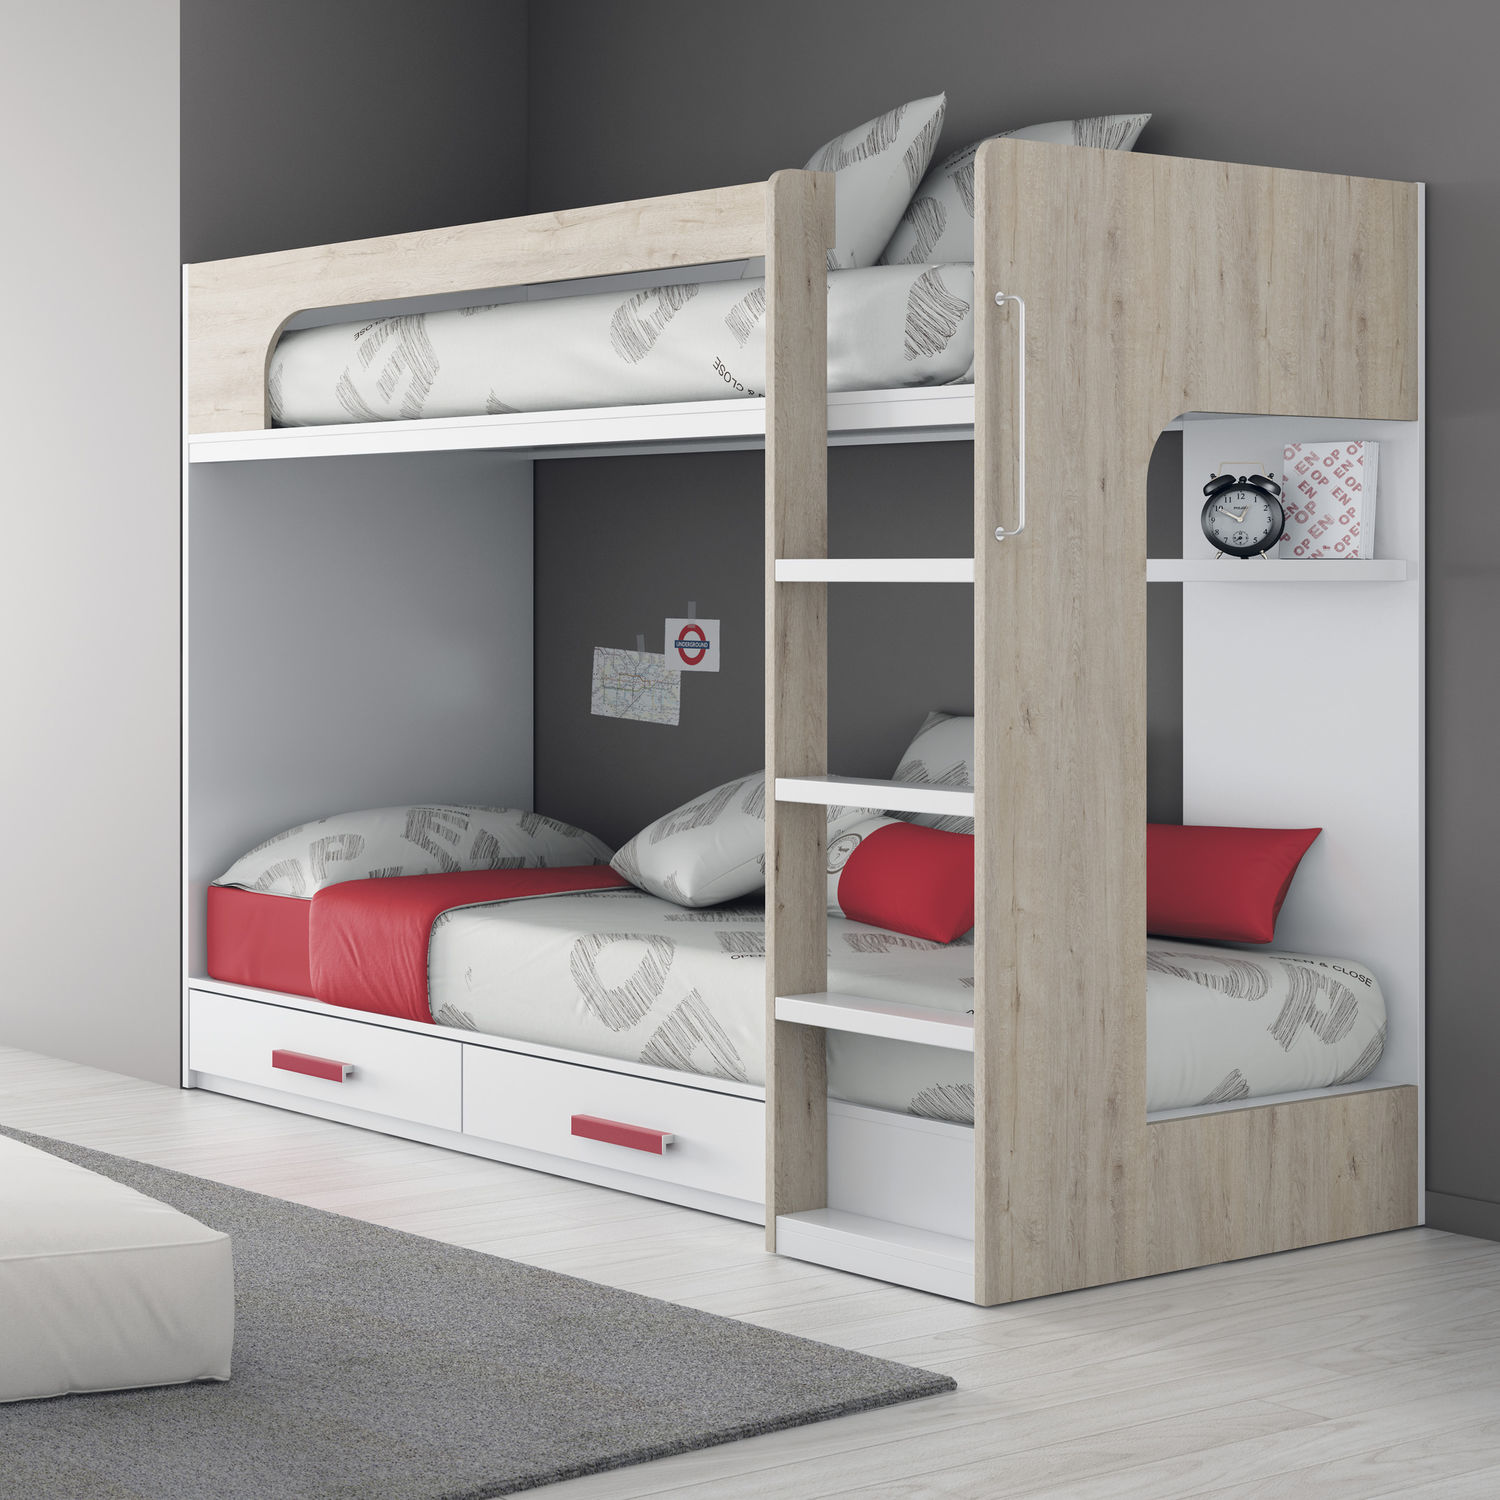 bunk bed  single  contemporary  melamine  touch   ros   - bunk bed  single  contemporary  melamine touch  ros  sa